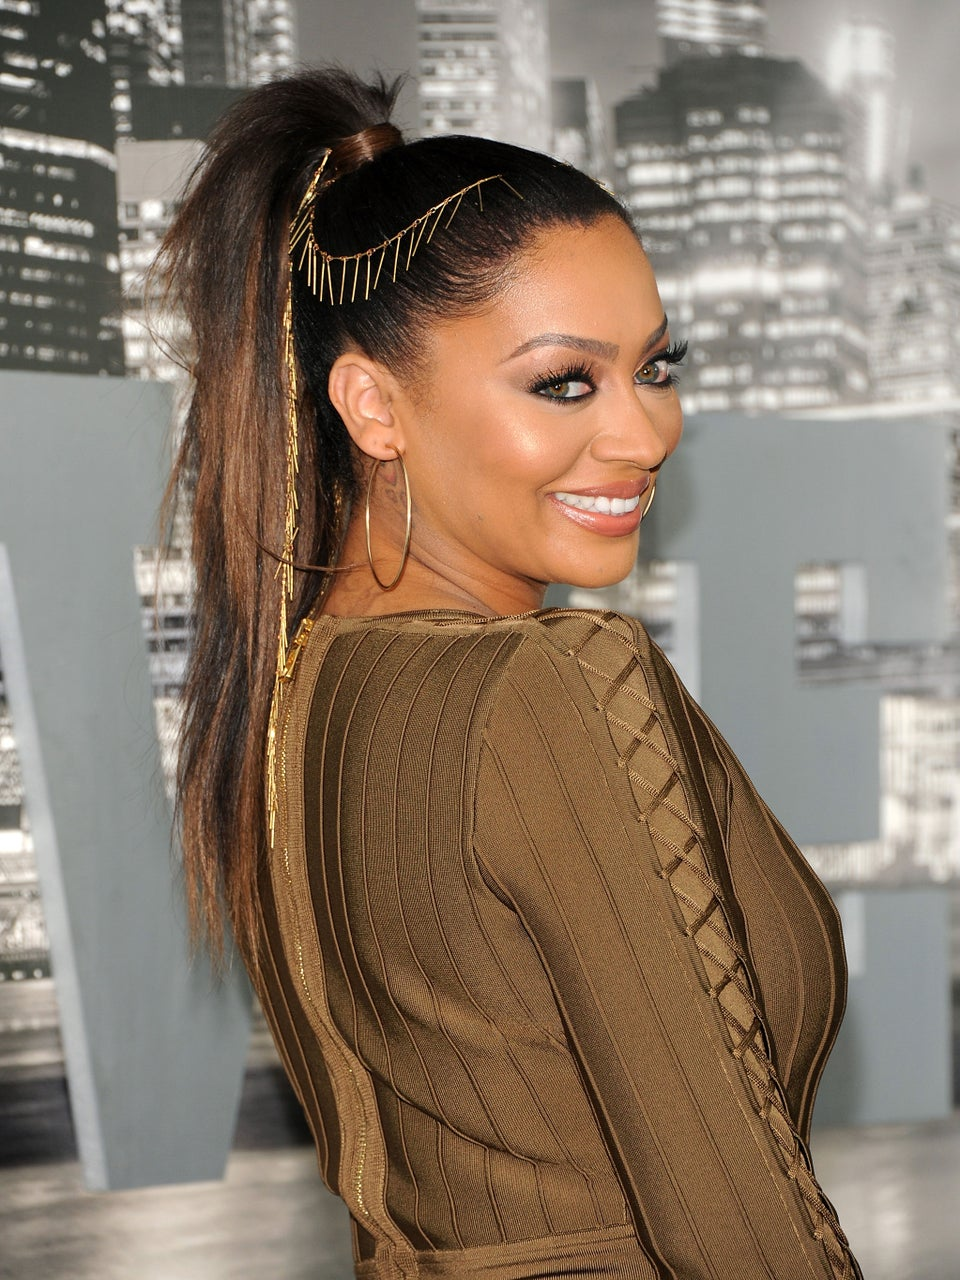 Hair Jewelry Is LaLa Anthony's Newest Obsession